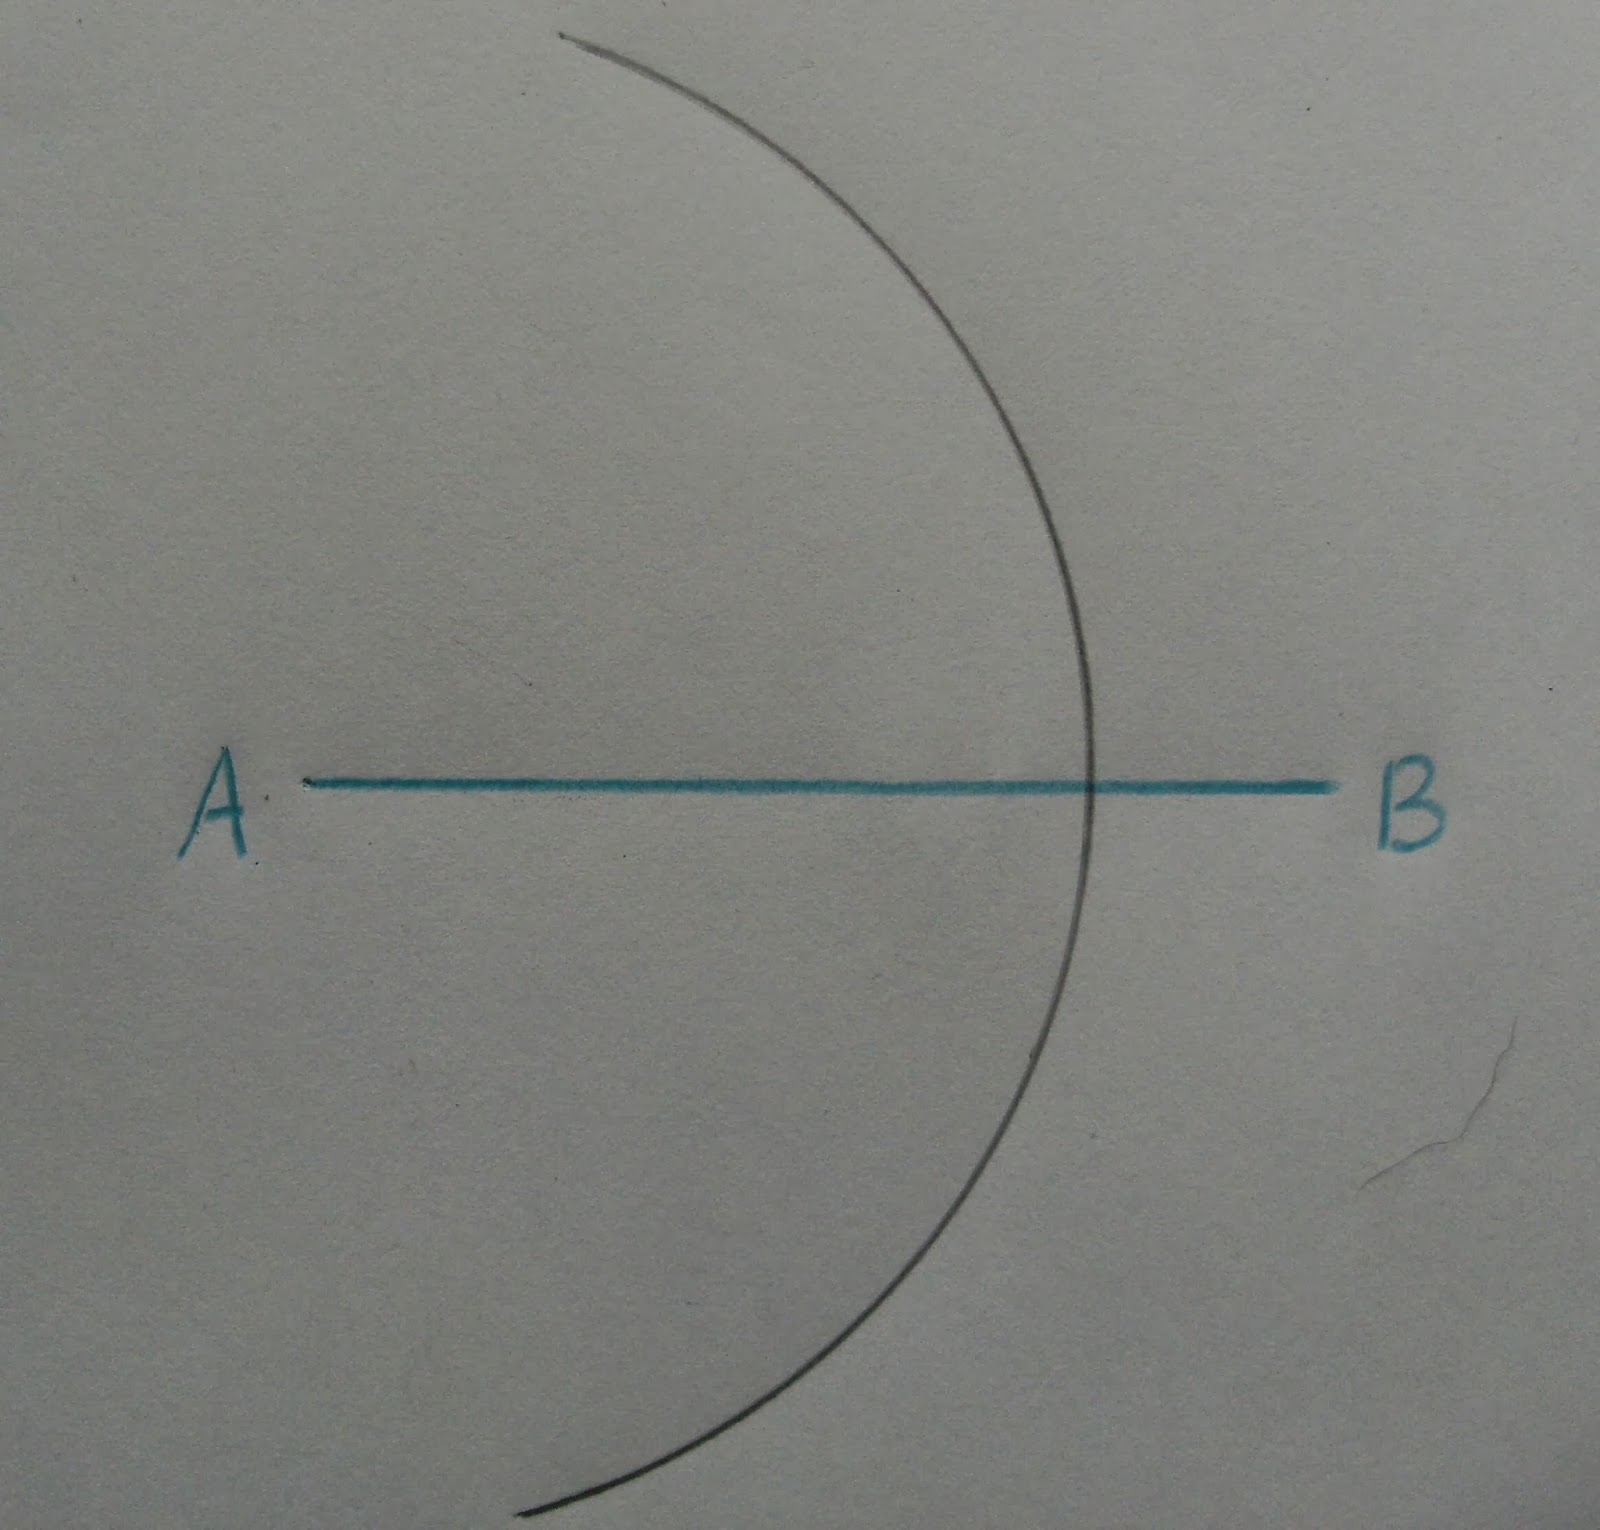 Drawing Perpendicular Lines With A Compass : To construct the perpendicular bisector of a line segment